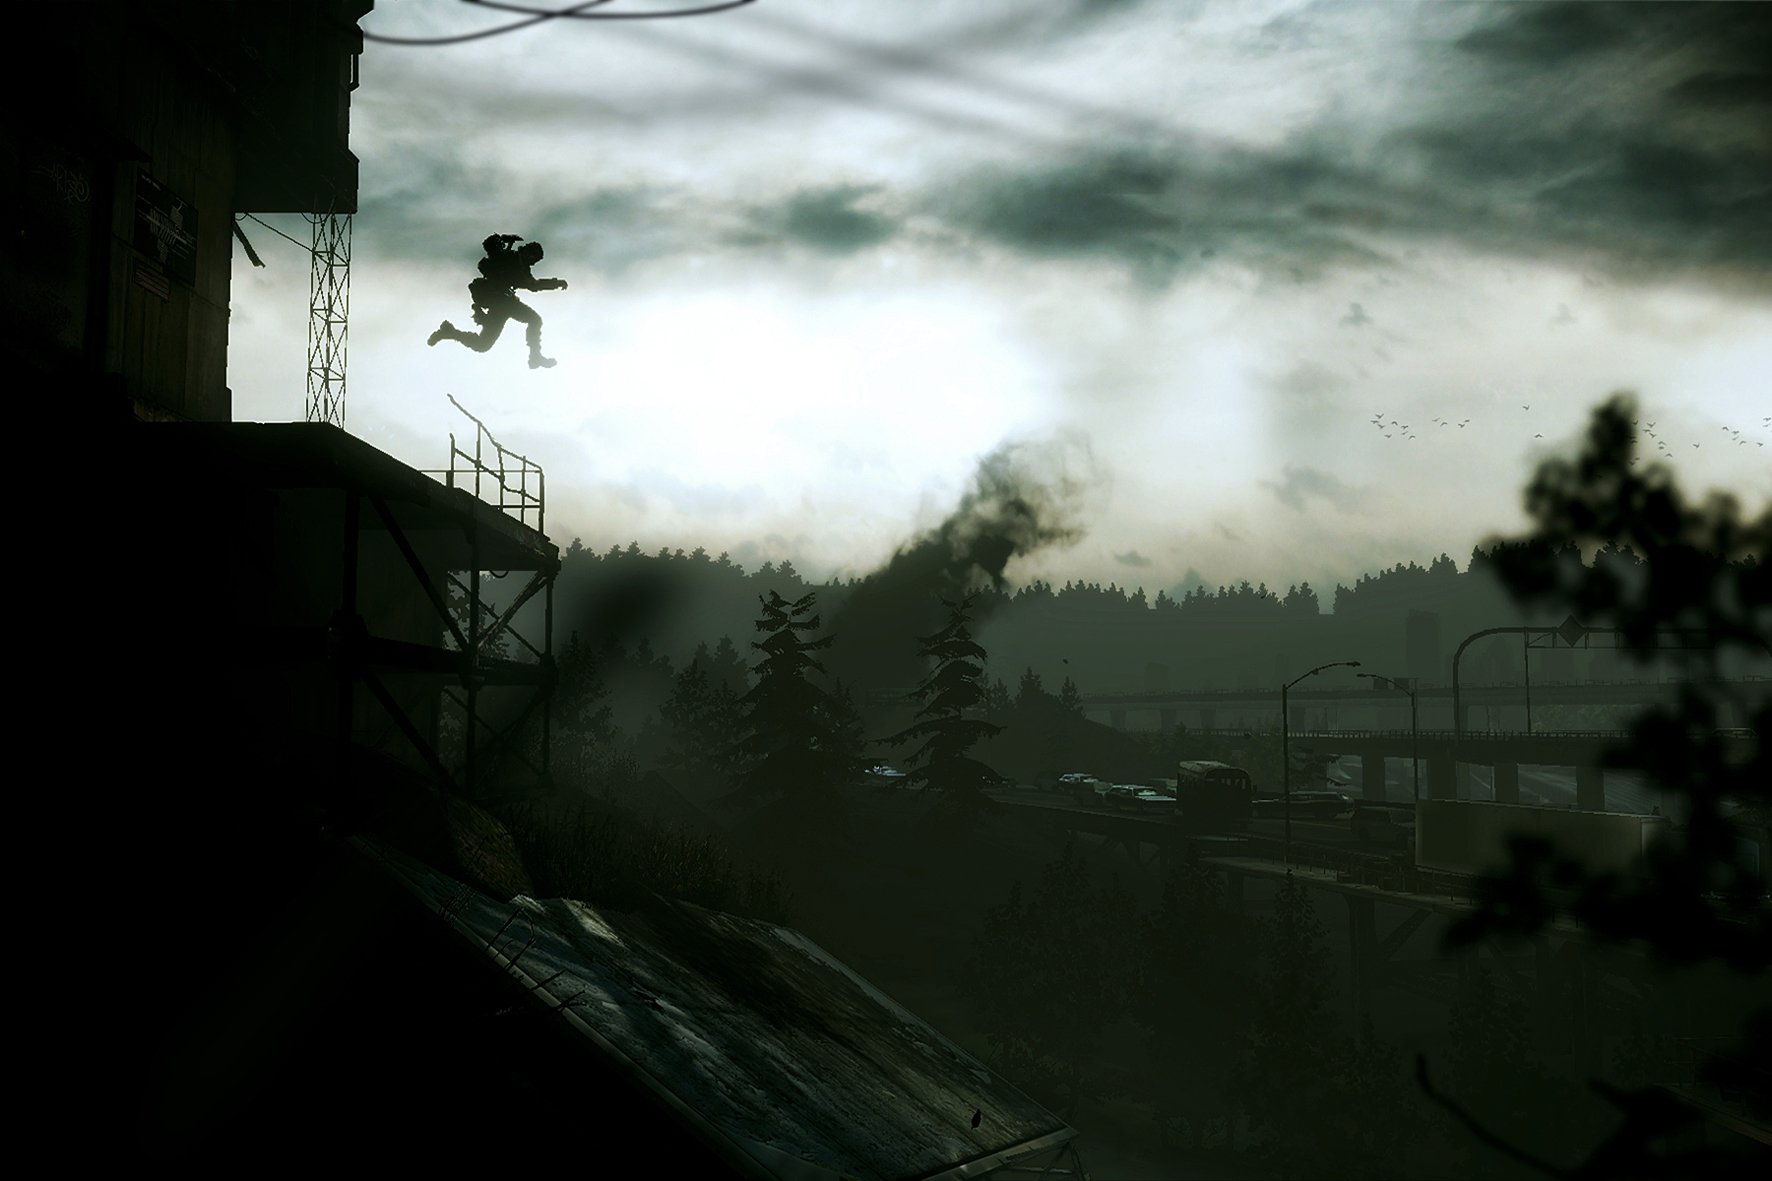 Wallpaper Hd 1080p Free Download For Mobile Games With Gold Deadlight Free For Xbox 360